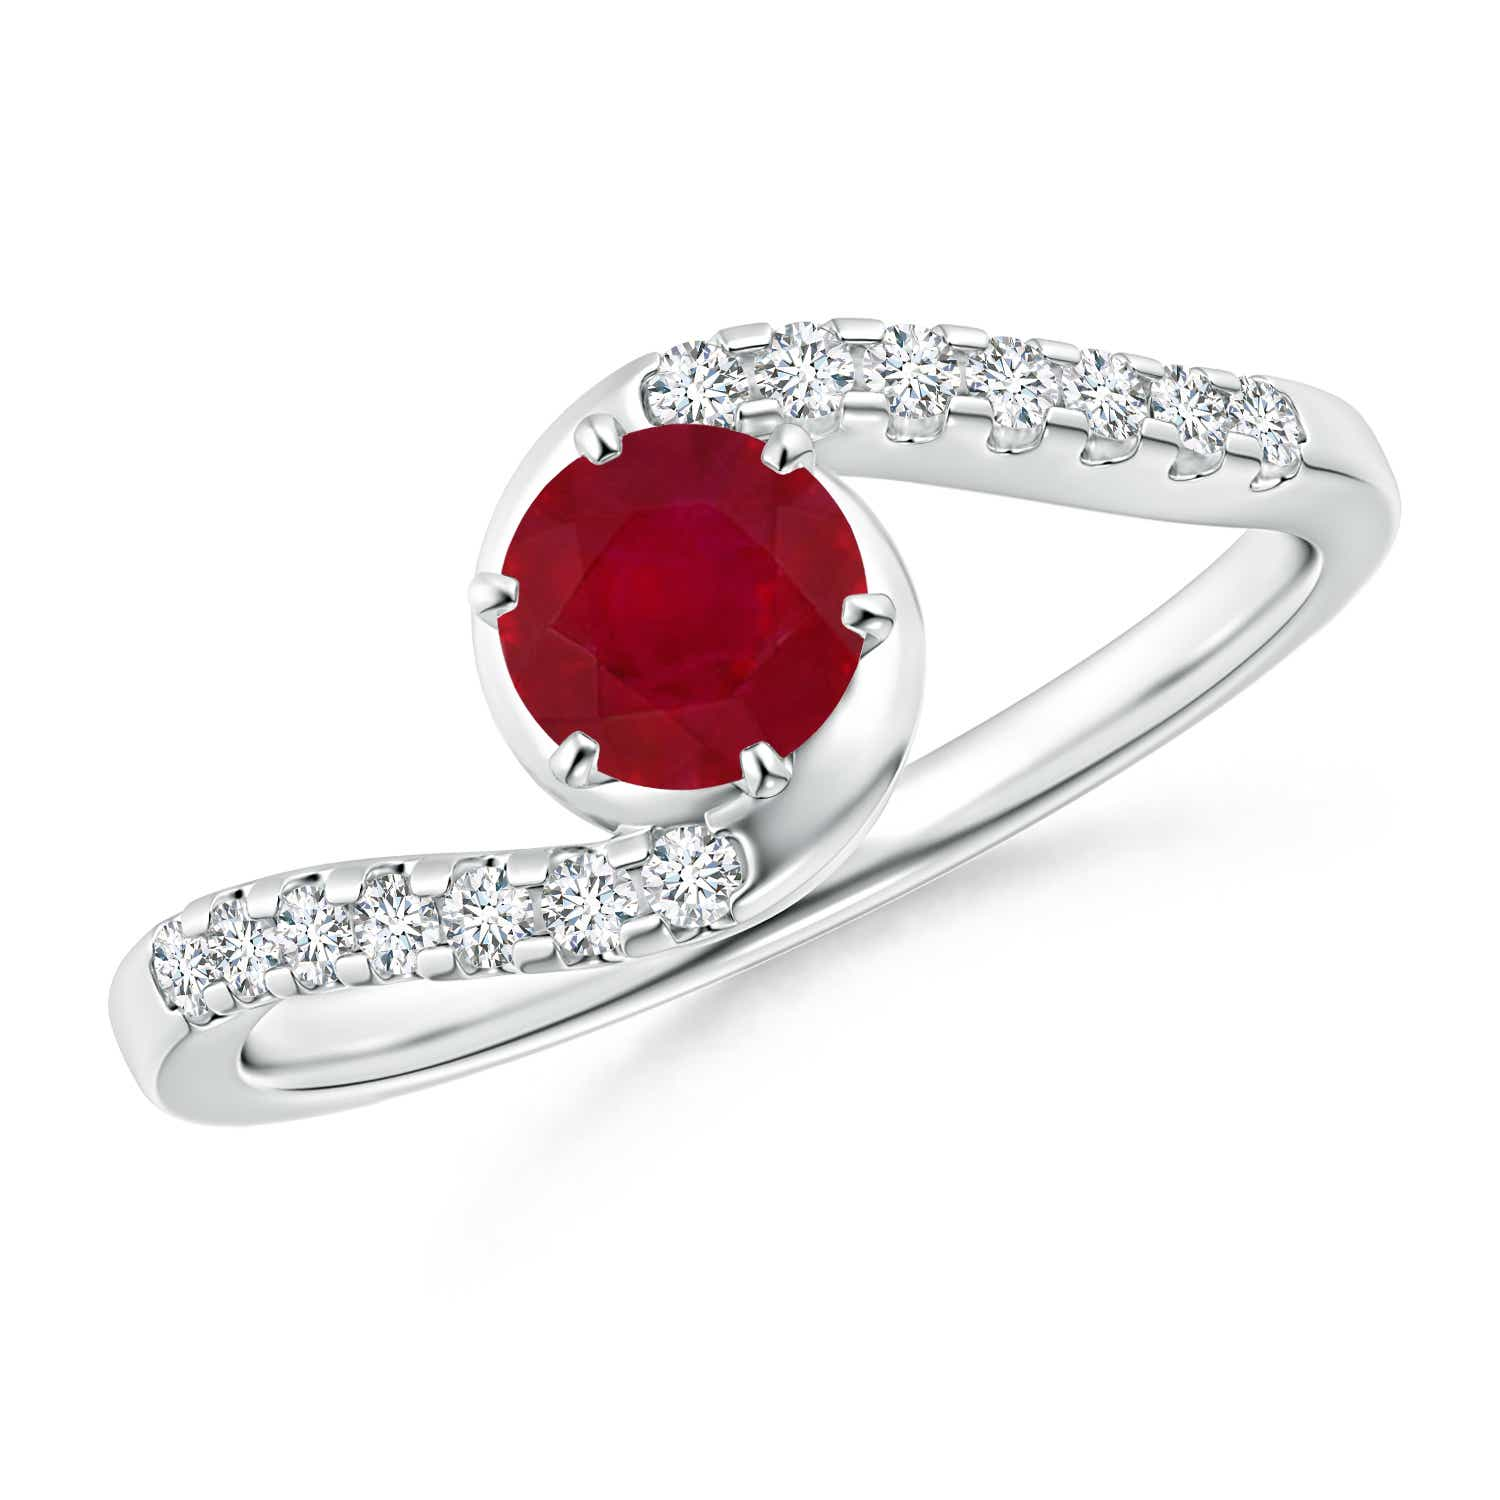 Angara Four Prong Ruby Halo Ring in White Gold mVkUmnJr3d